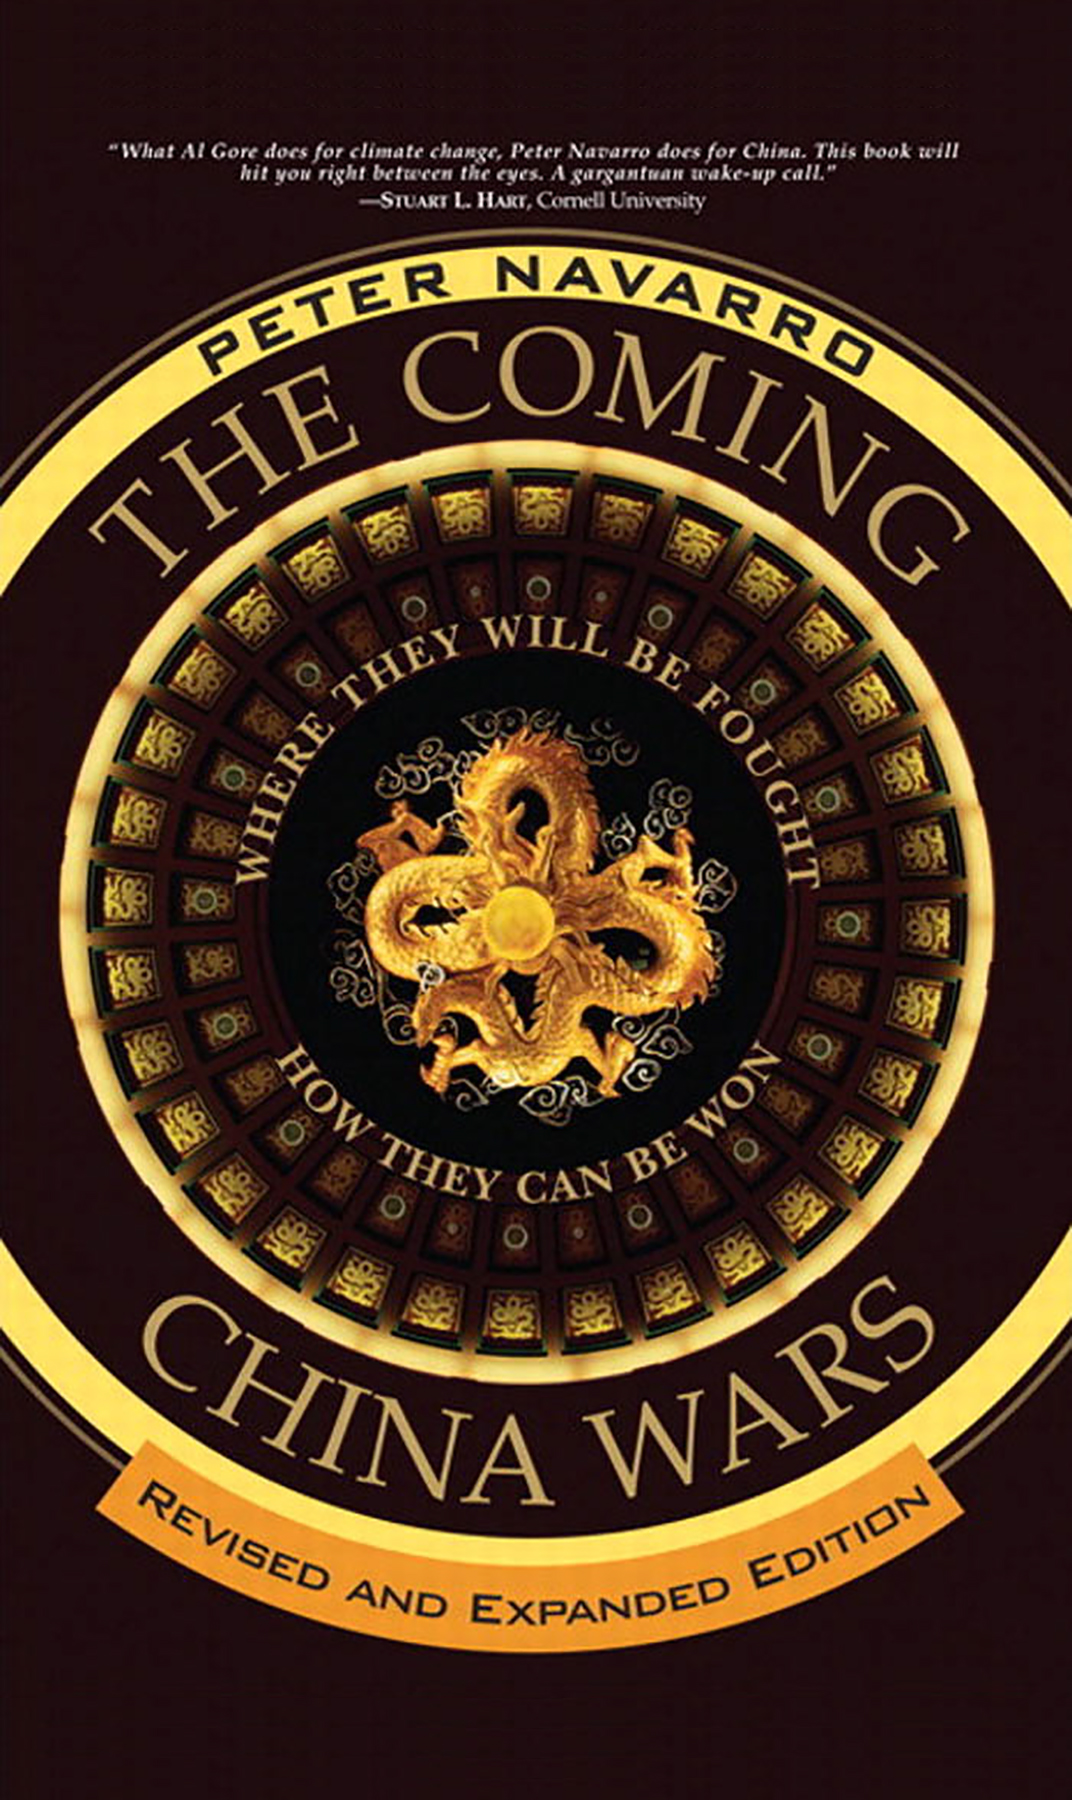 Download Ebook The Coming China Wars by Peter Navarro Pdf